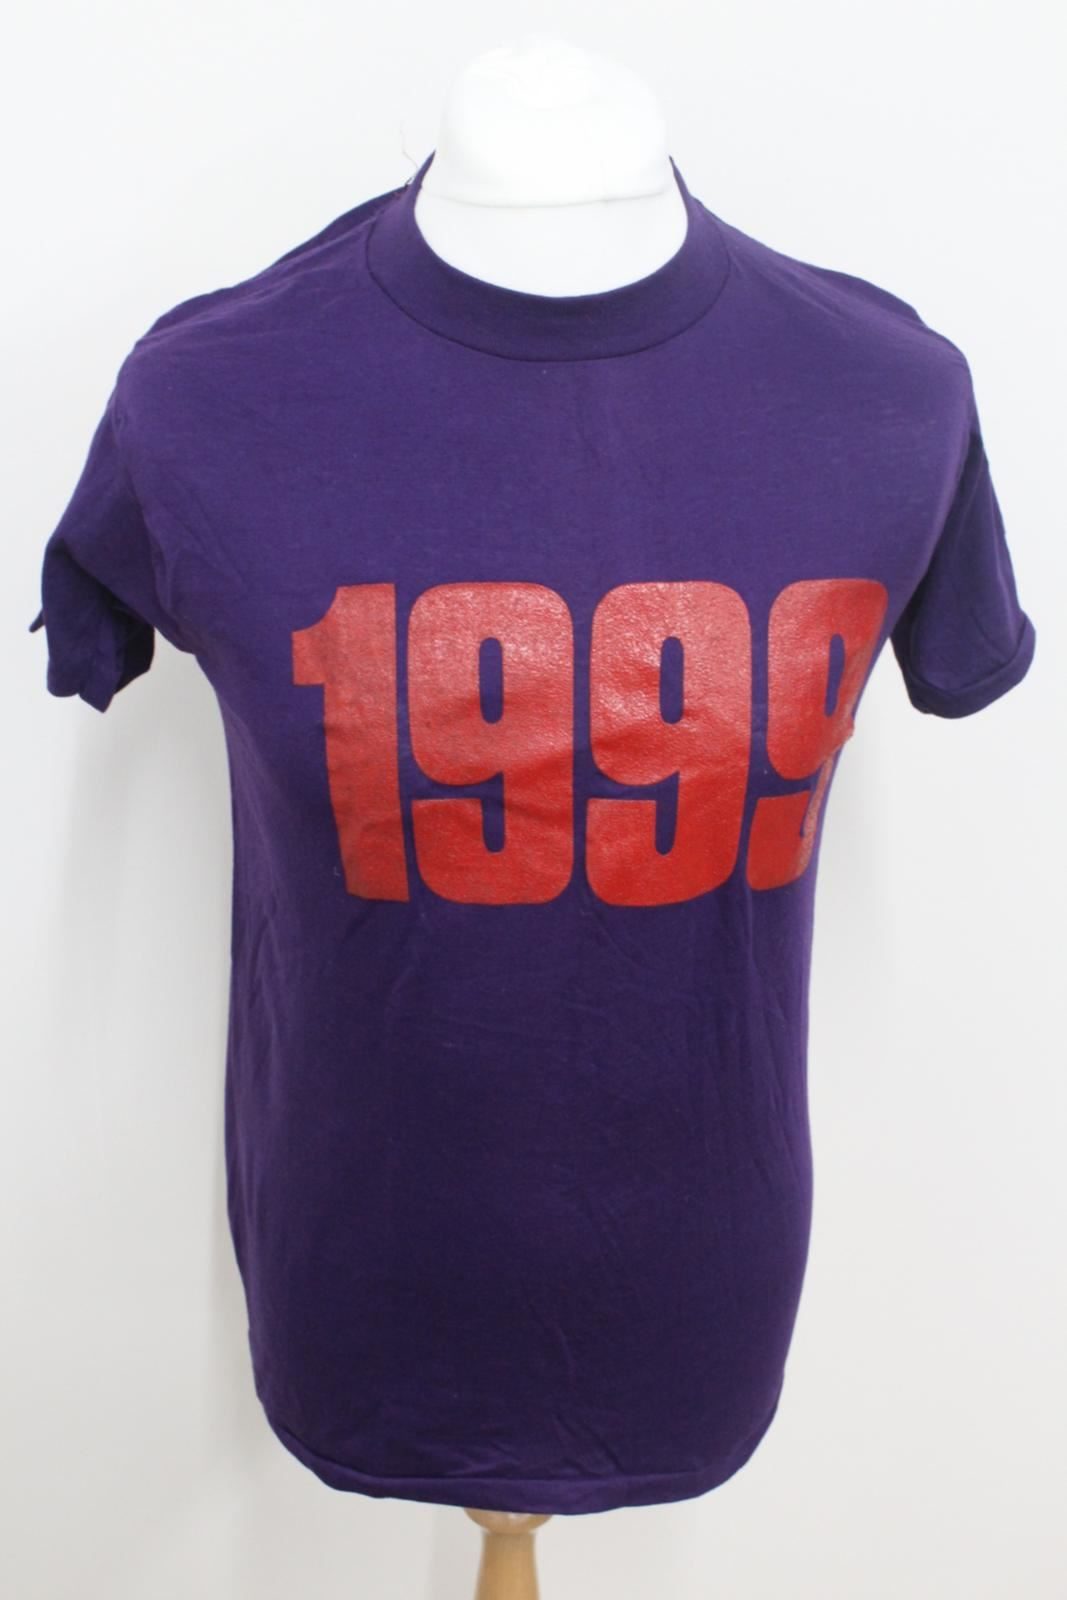 SNEAKERS-Prince-Vintage-1982-Crew-Purple-1999-Tour-T-Shirt-Vanity-6-Large-42-44